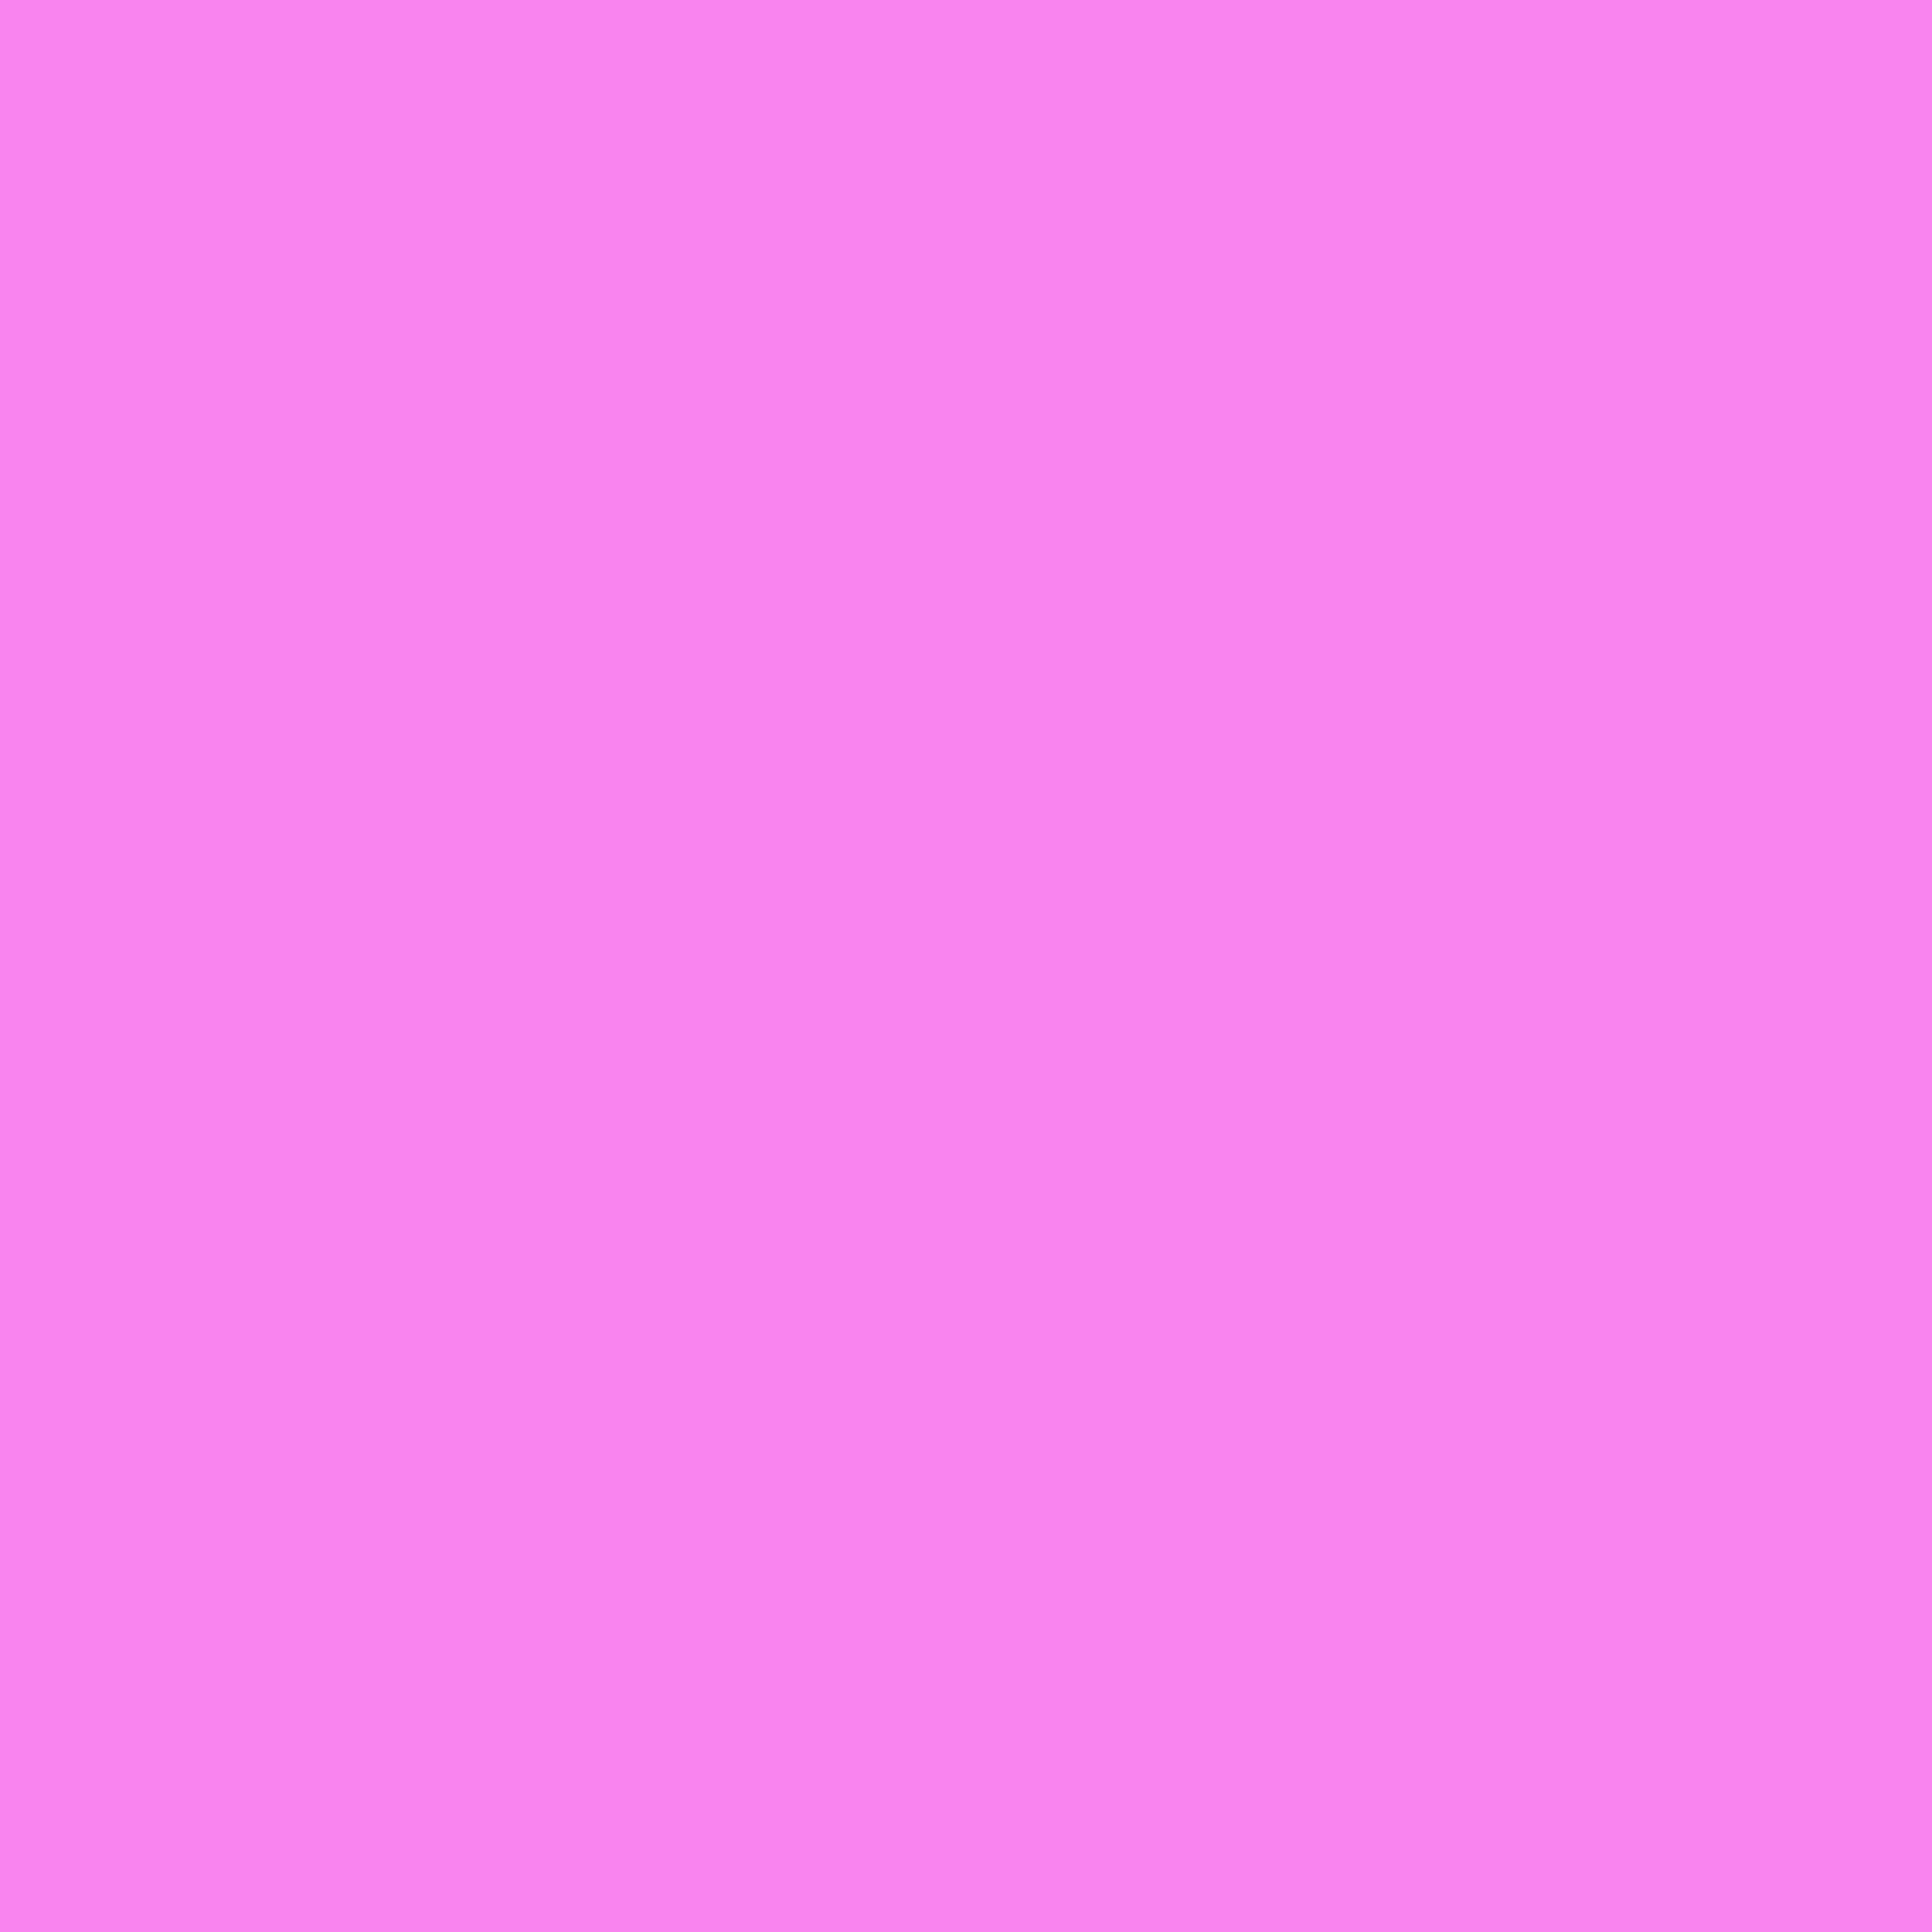 2048x2048 Light Fuchsia Pink Solid Color Background